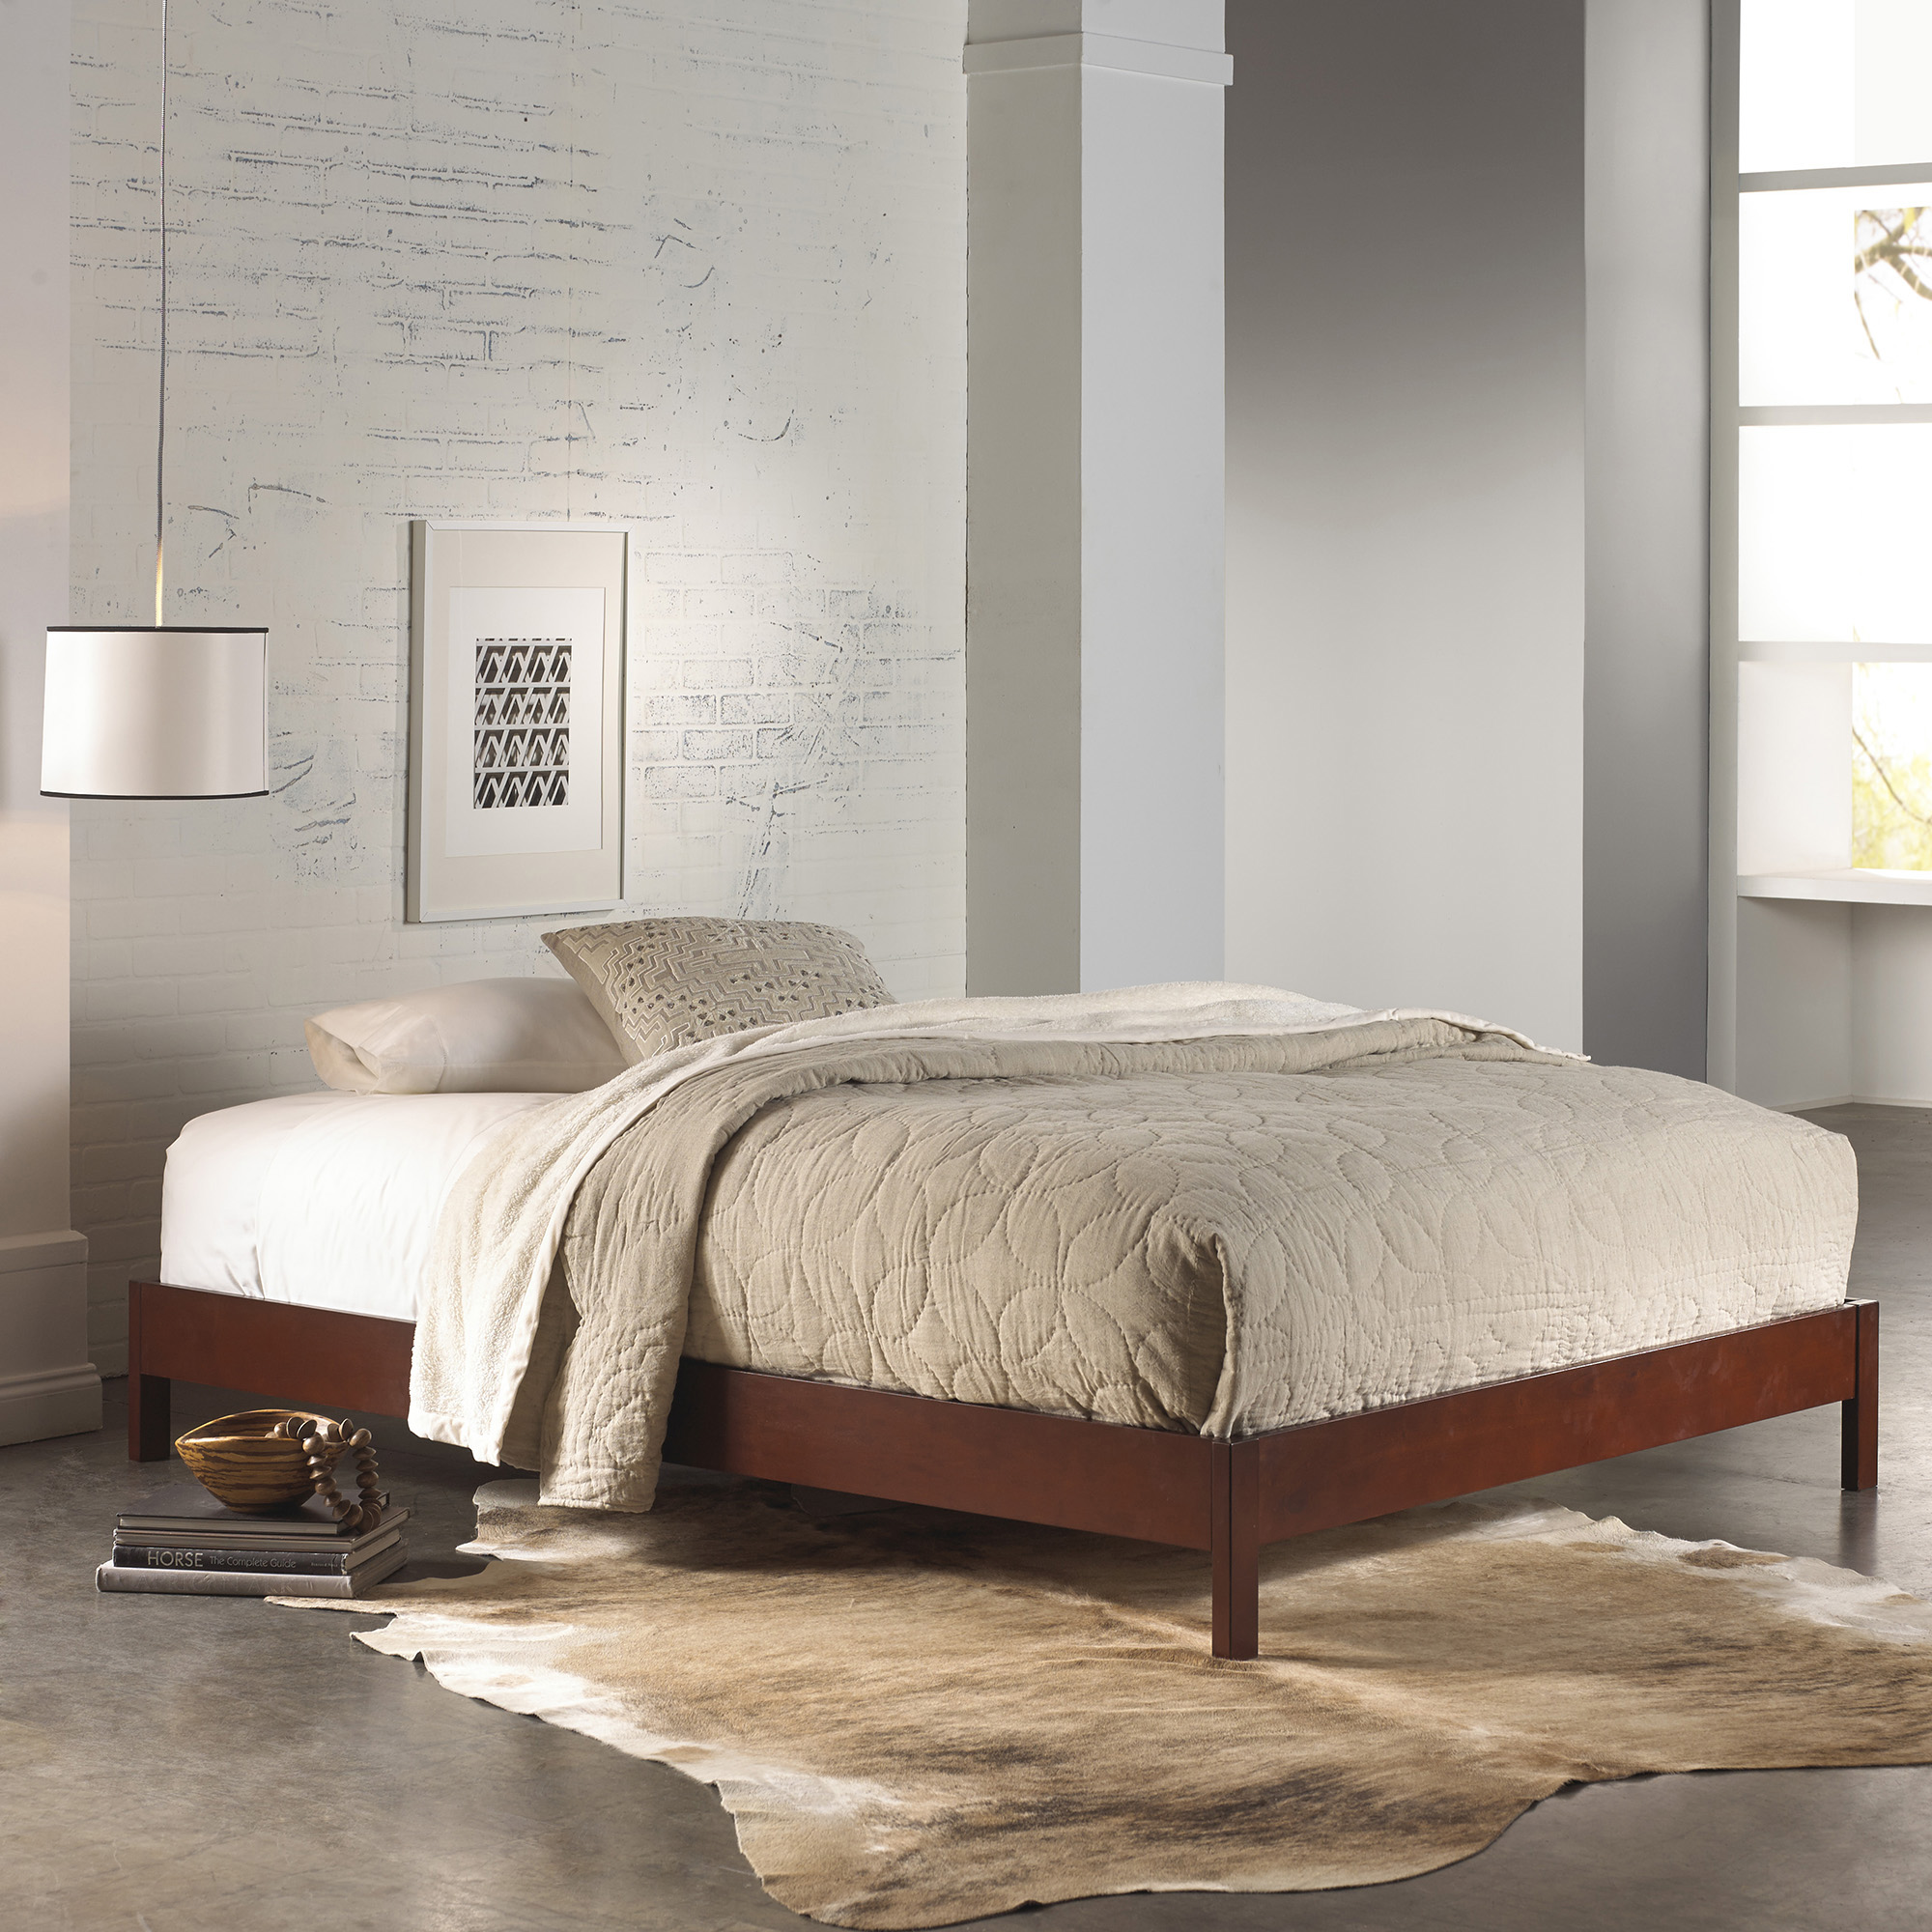 Fashion Bed Group Murray Complete Platform Bed, Multiple Sizes and Finishes